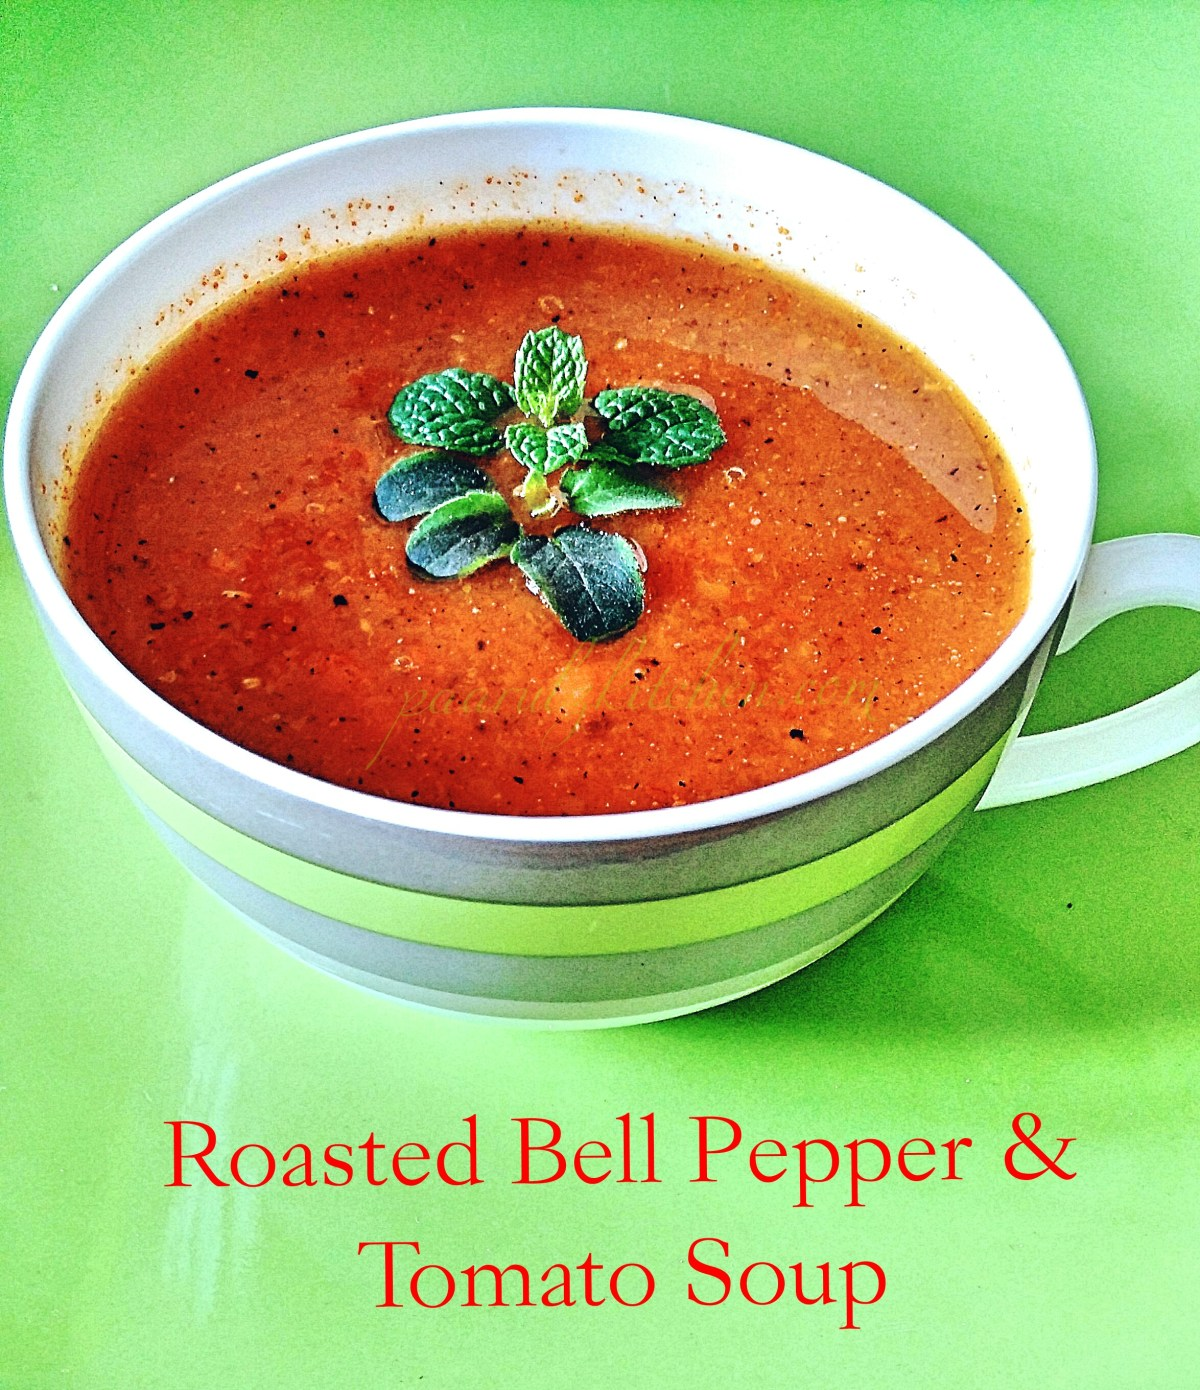 Roasted bell pepper & tomato soup (5)